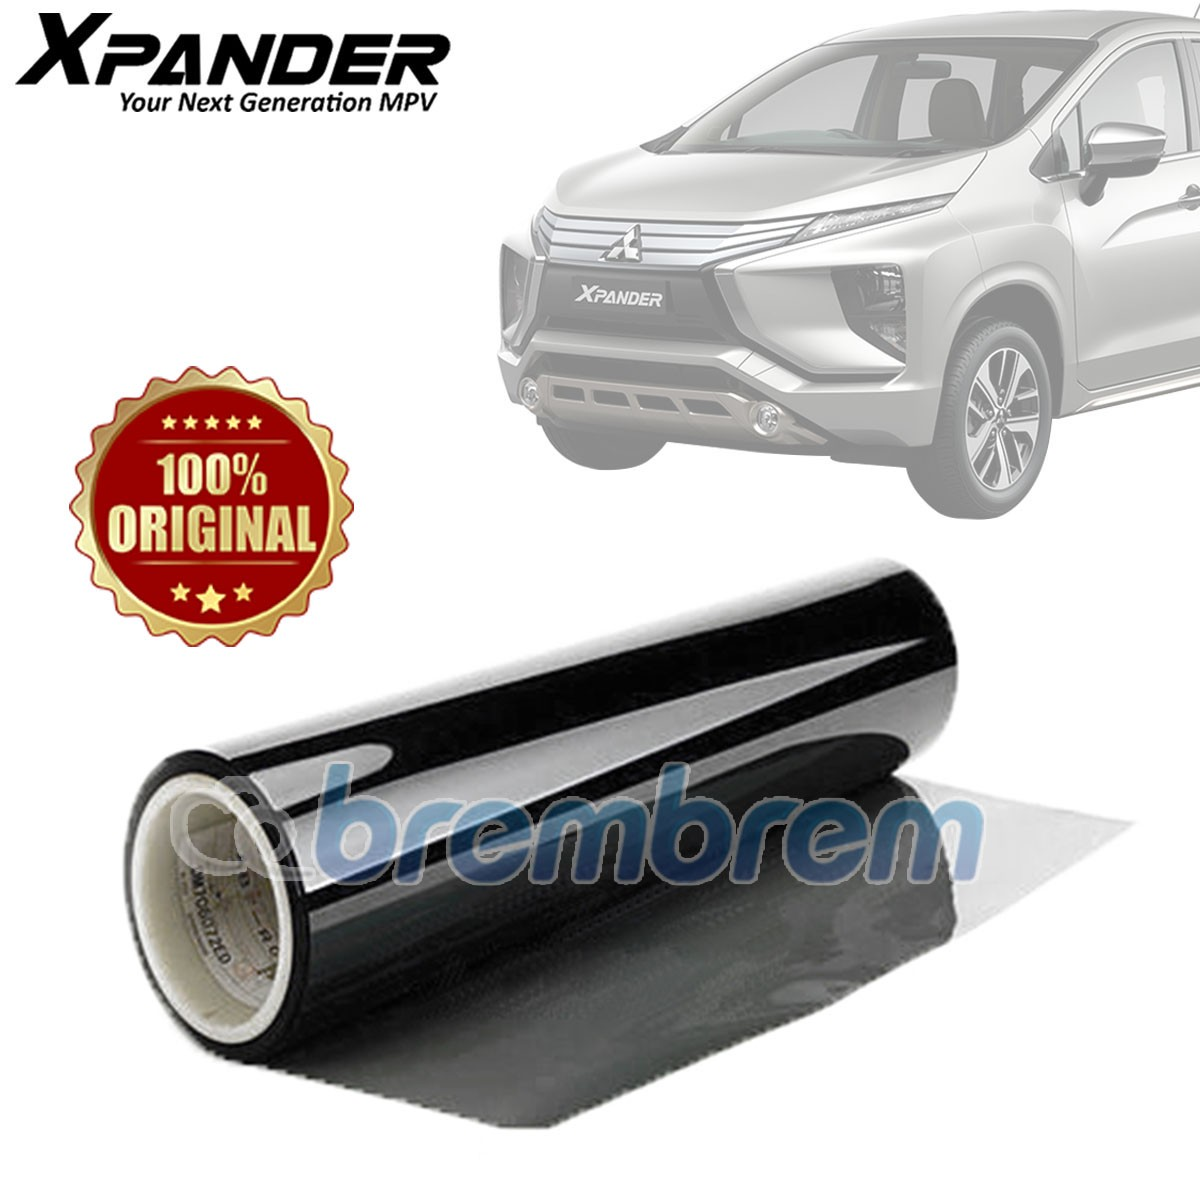 KACA FILM 3M BLACK BEAUTY - (MITSUBISHI XPANDER) FULL KACA